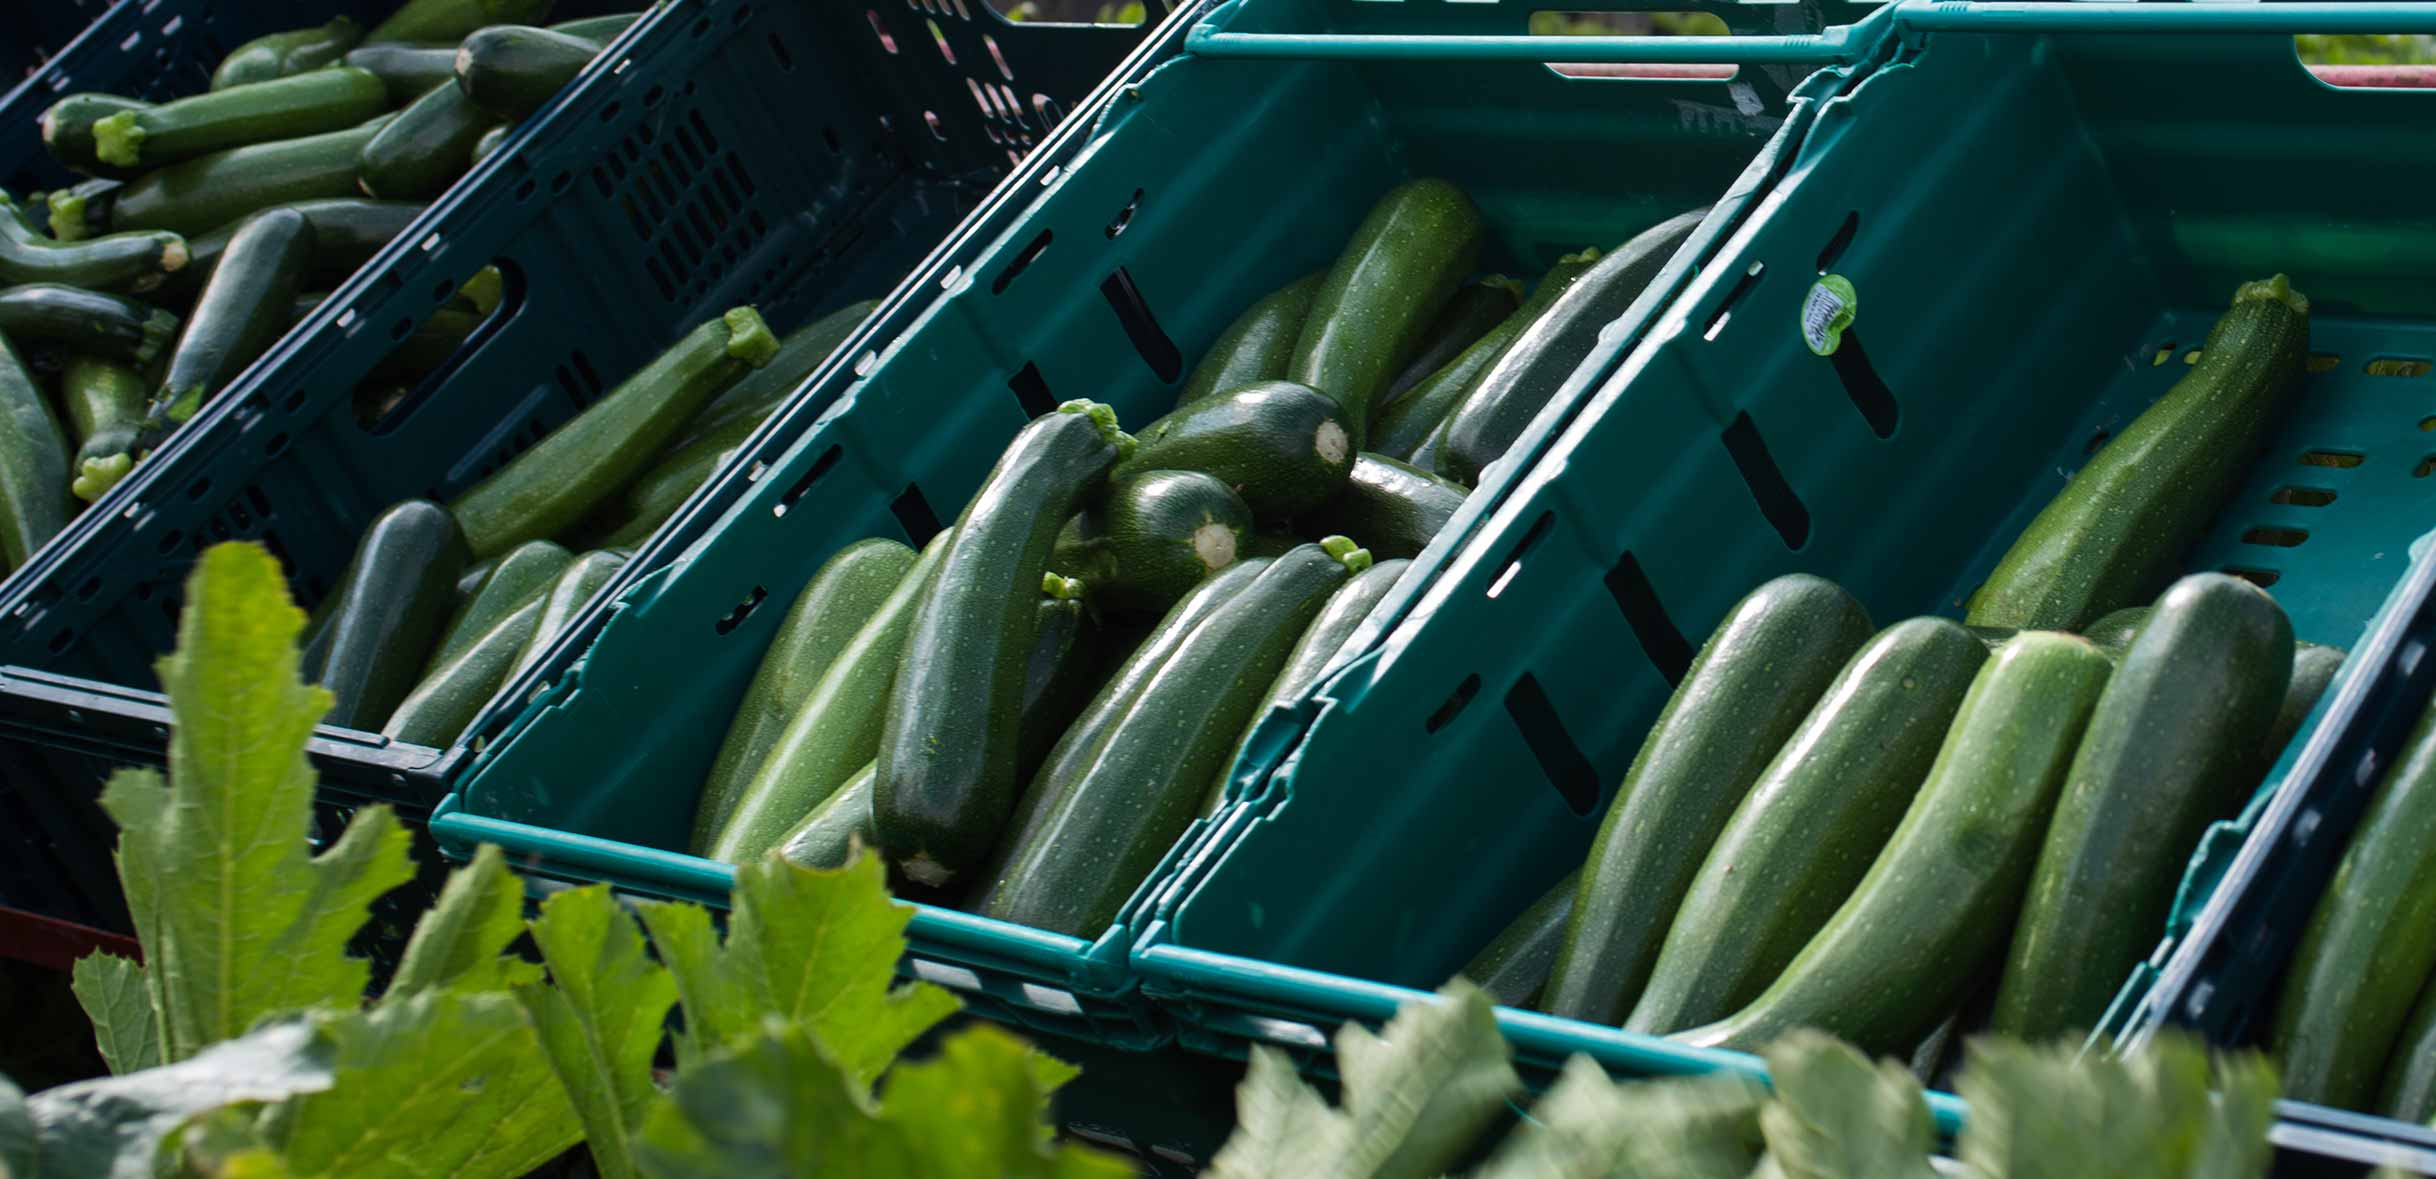 Photography of courgettebeing graded and trimmed by Barfoots España in Almeria